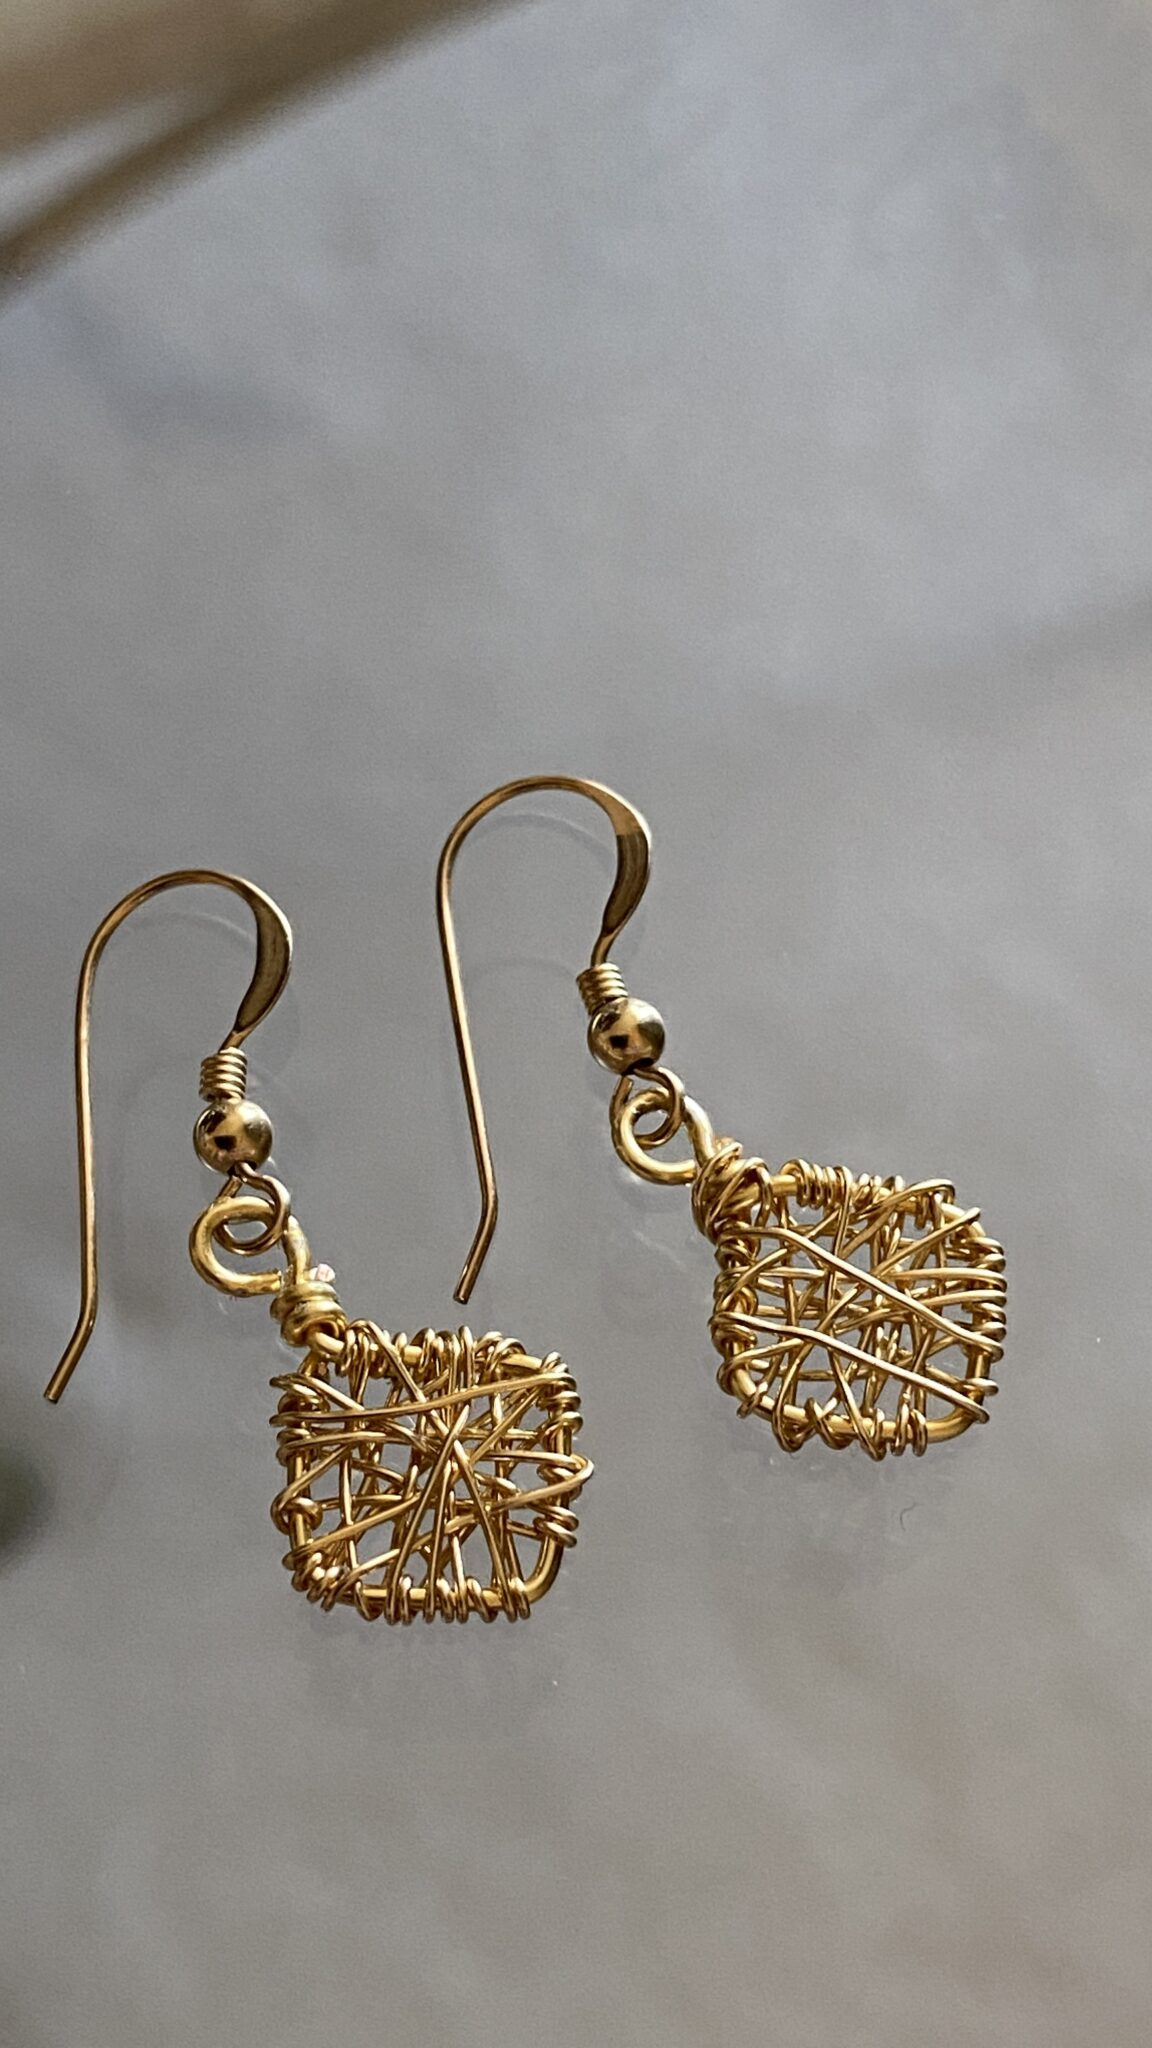 Hand Wrapped Minimalist 14k Gold Filled Wire Earrings. COVET AND DESIRE